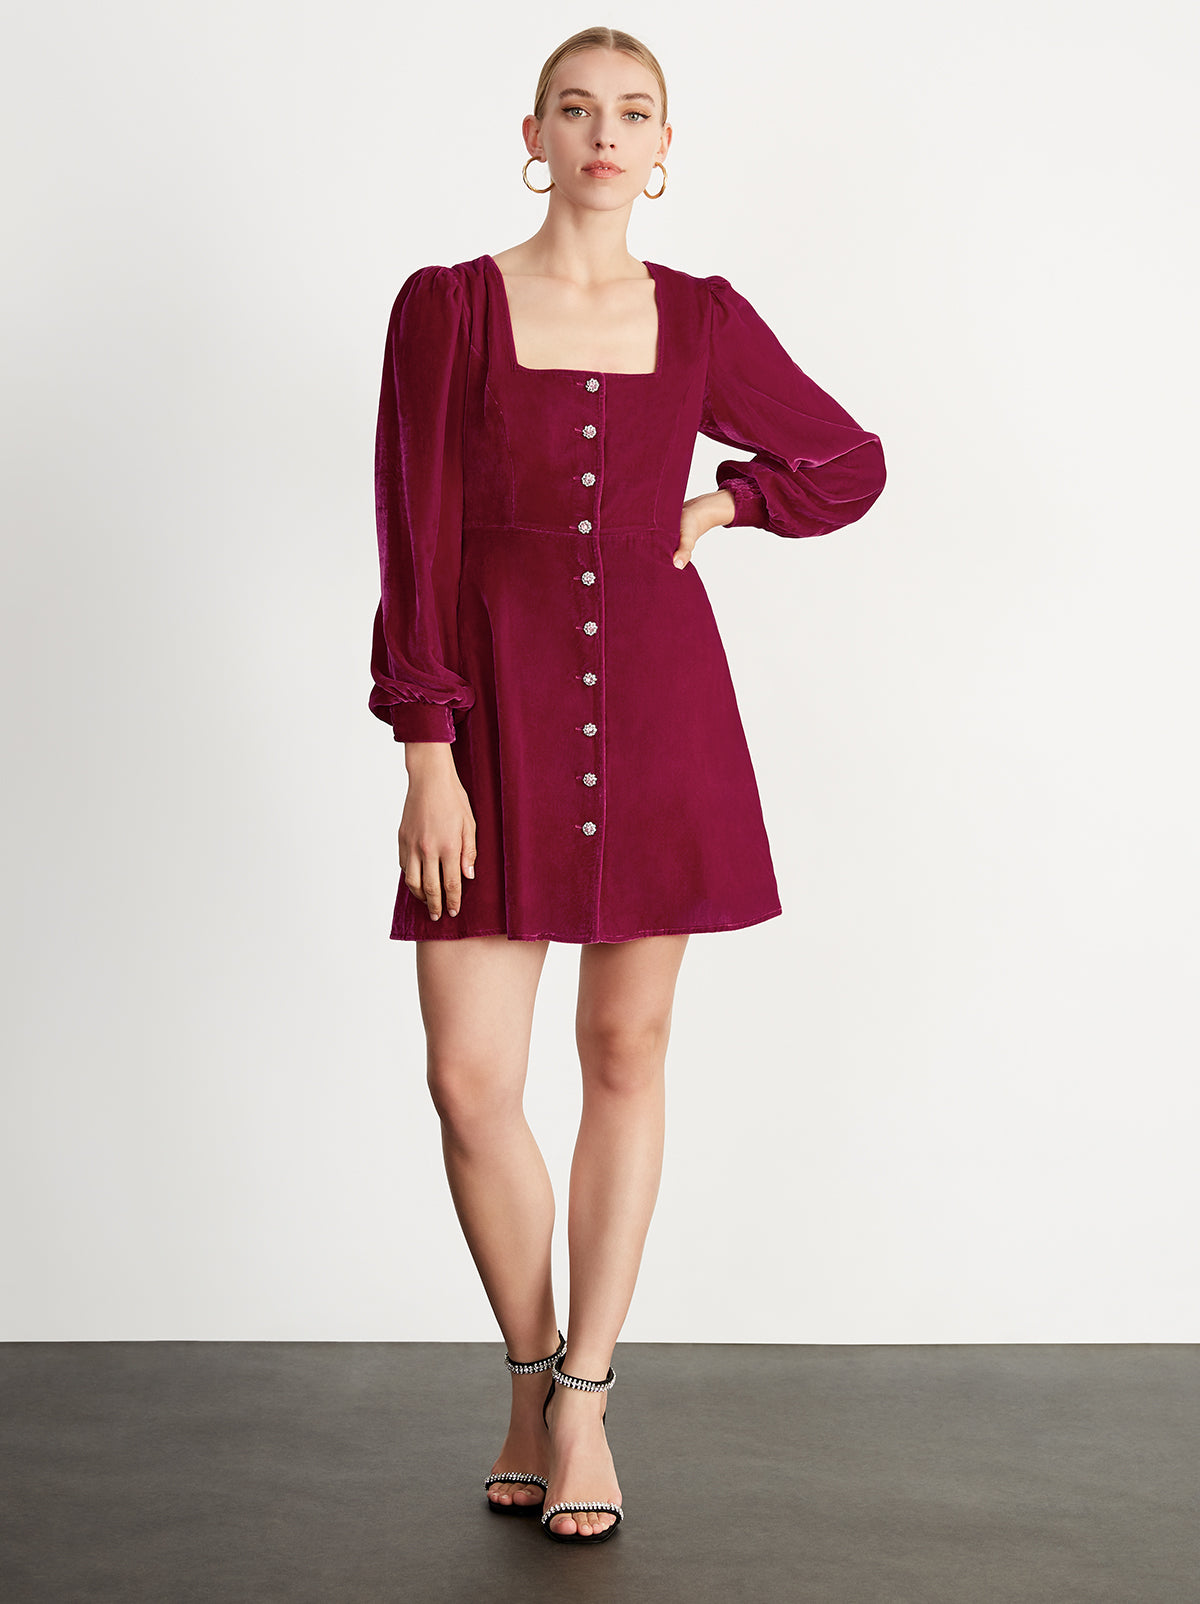 Maria Ruby Velvet Mini Dress by KITRI Studio